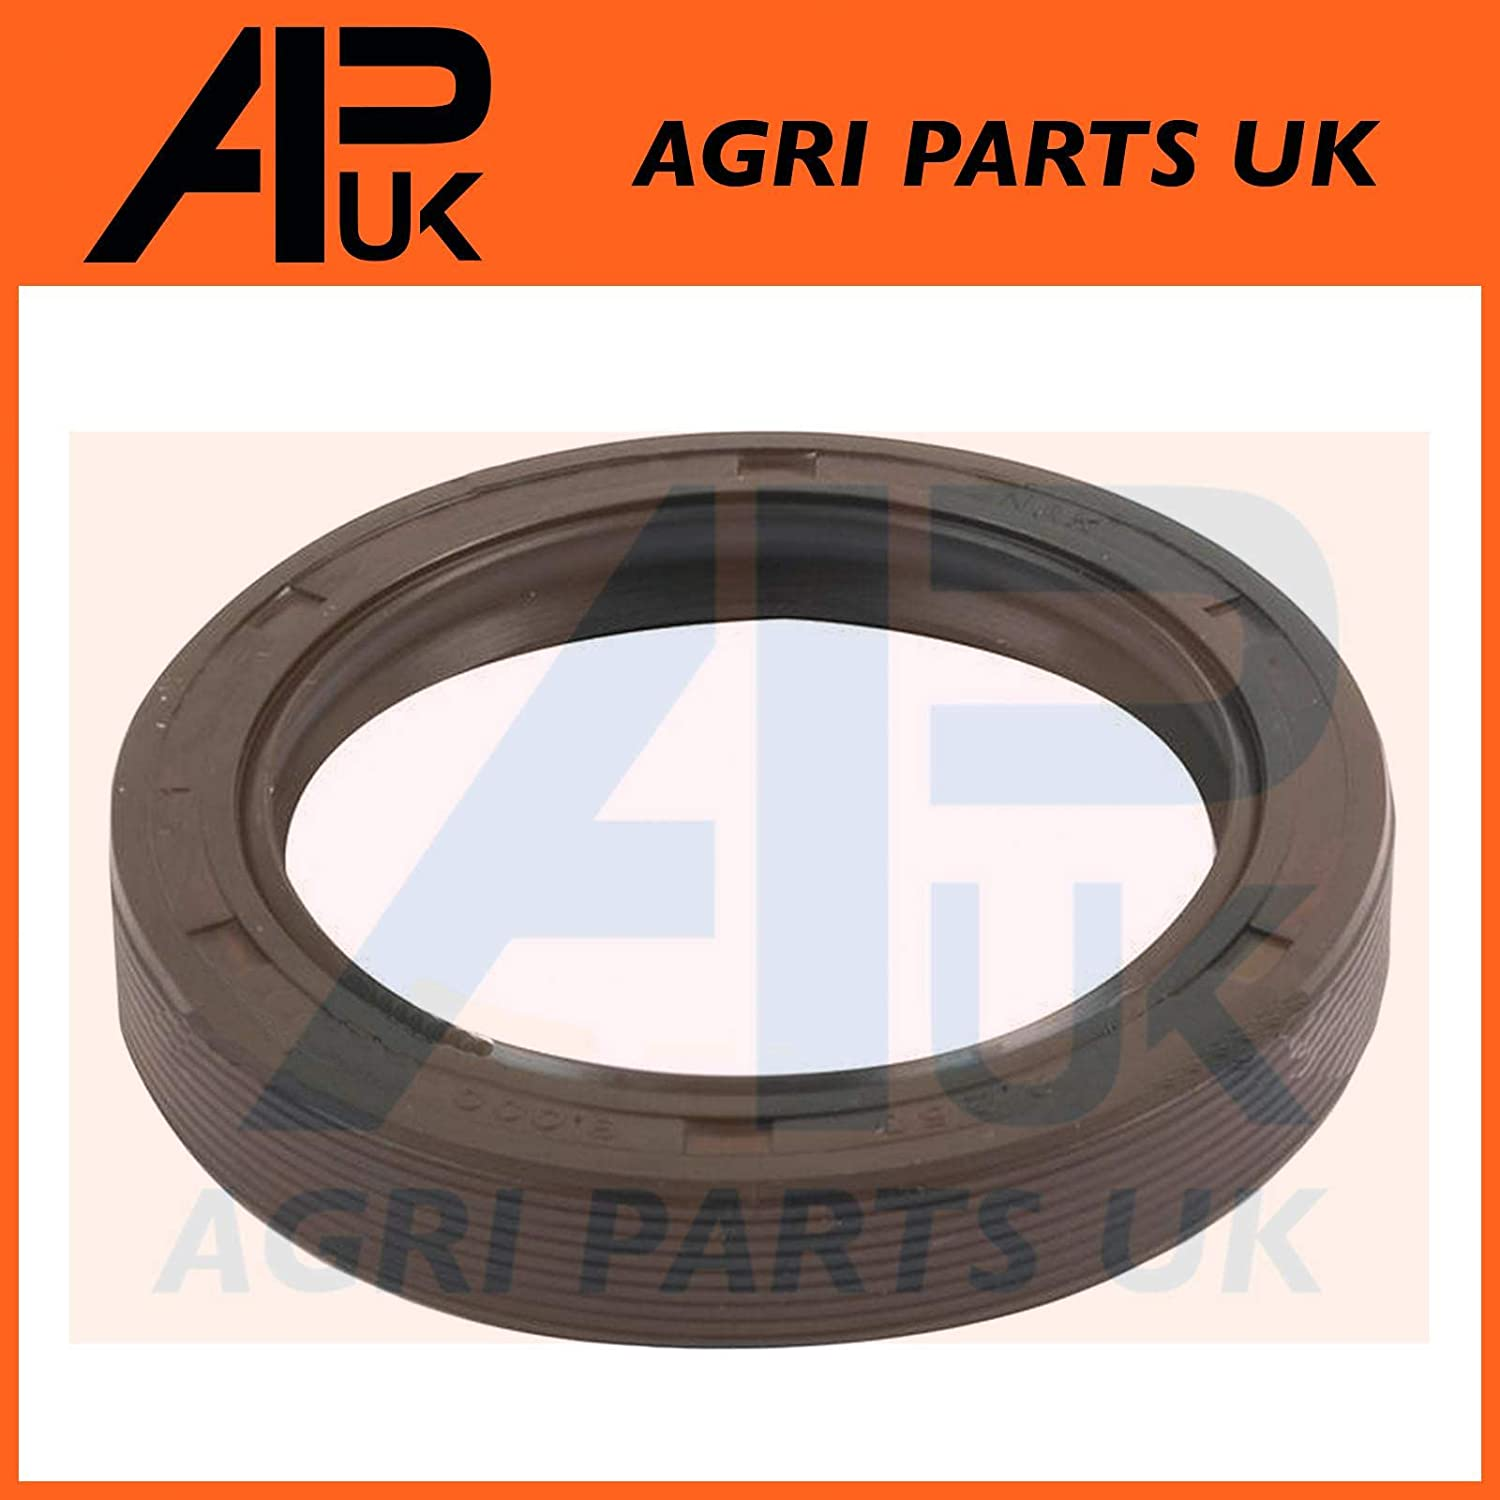 APUK Front Crankshaft Timing Cover Oil Seal Compatible with Massey Ferguson 35 35X 65 135 165 Tractor